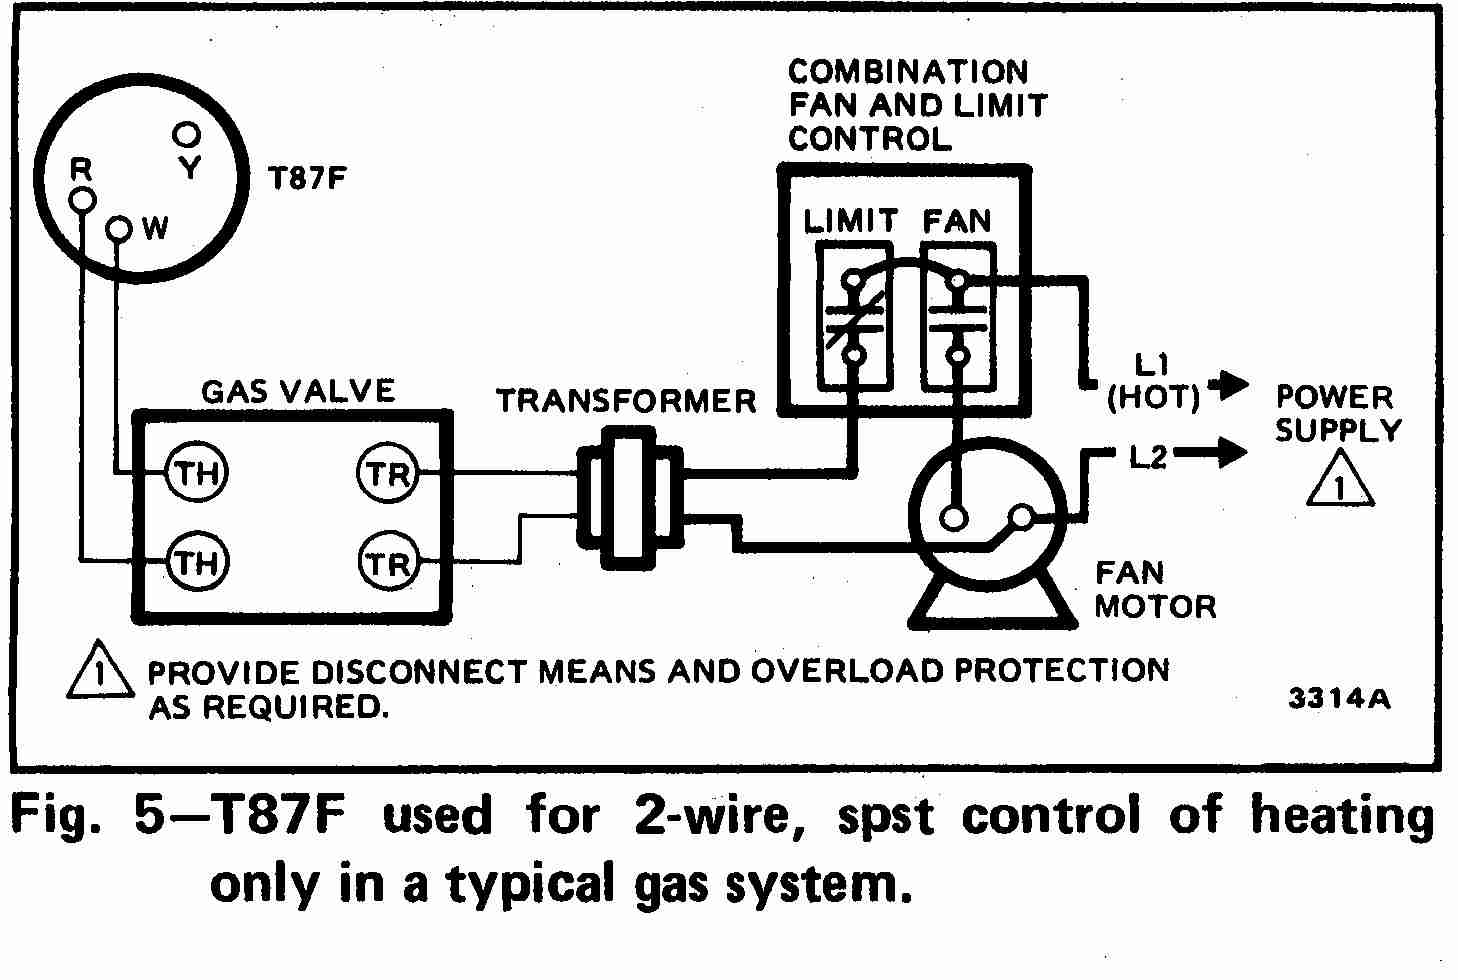 room thermostat wiring diagrams for hvac systems rh inspectapedia com hvac wire diagram symbols hvac wiring diagram thermostat